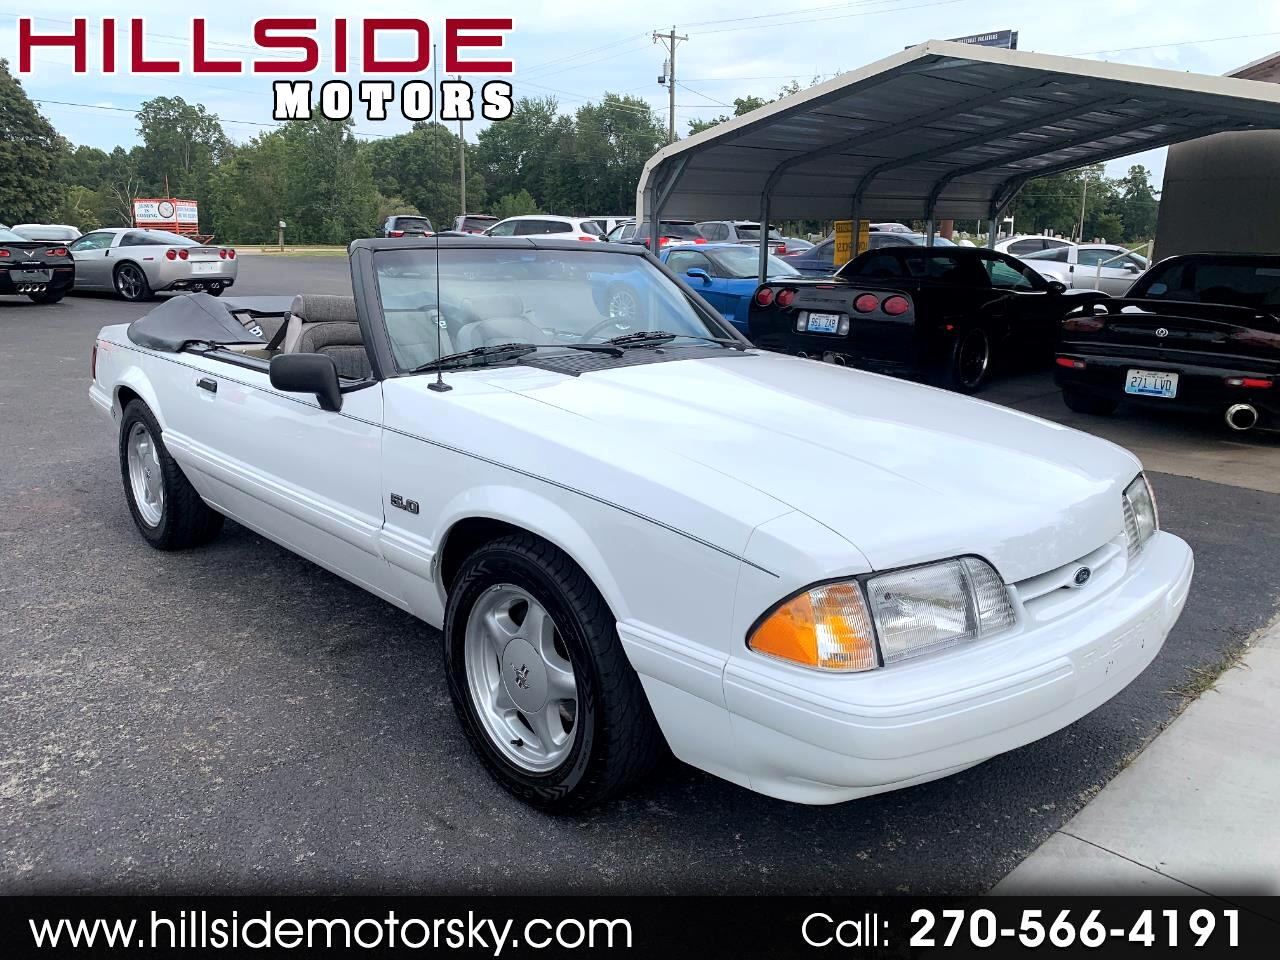 1992 Ford Mustang LX 5.0L convertible